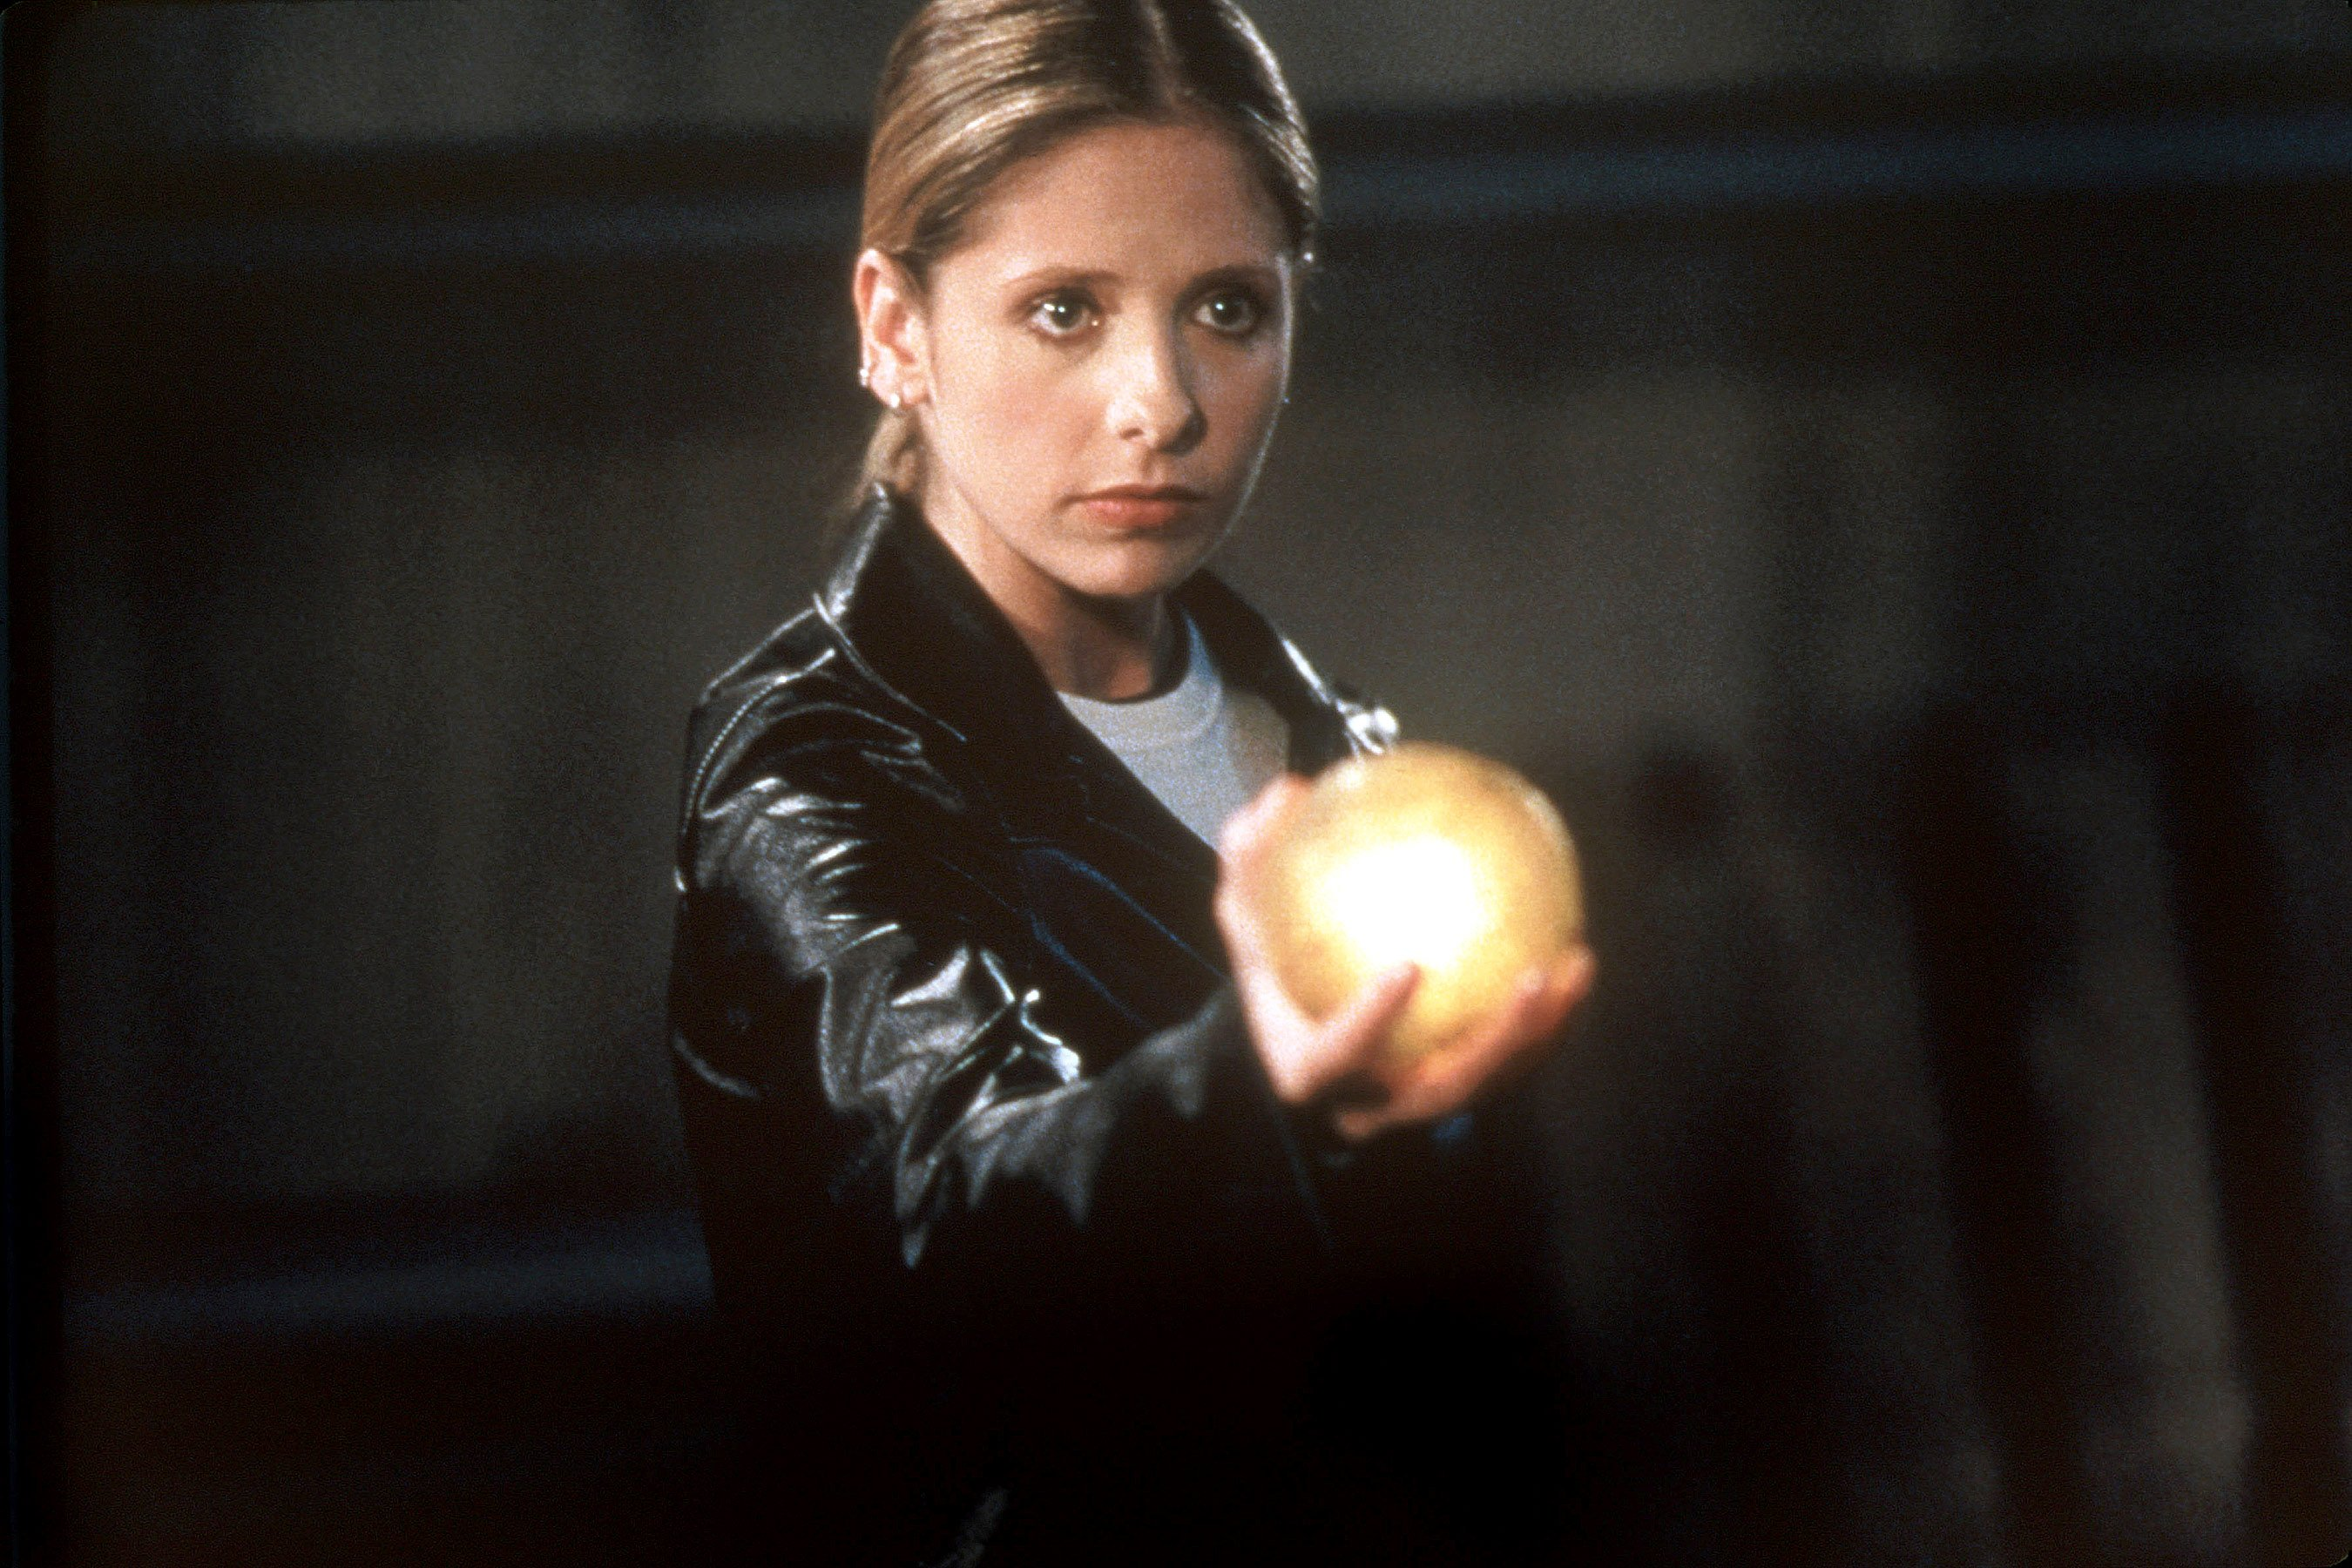 Buffy the Vampire Slayer revival frequently discussed, says Fox head